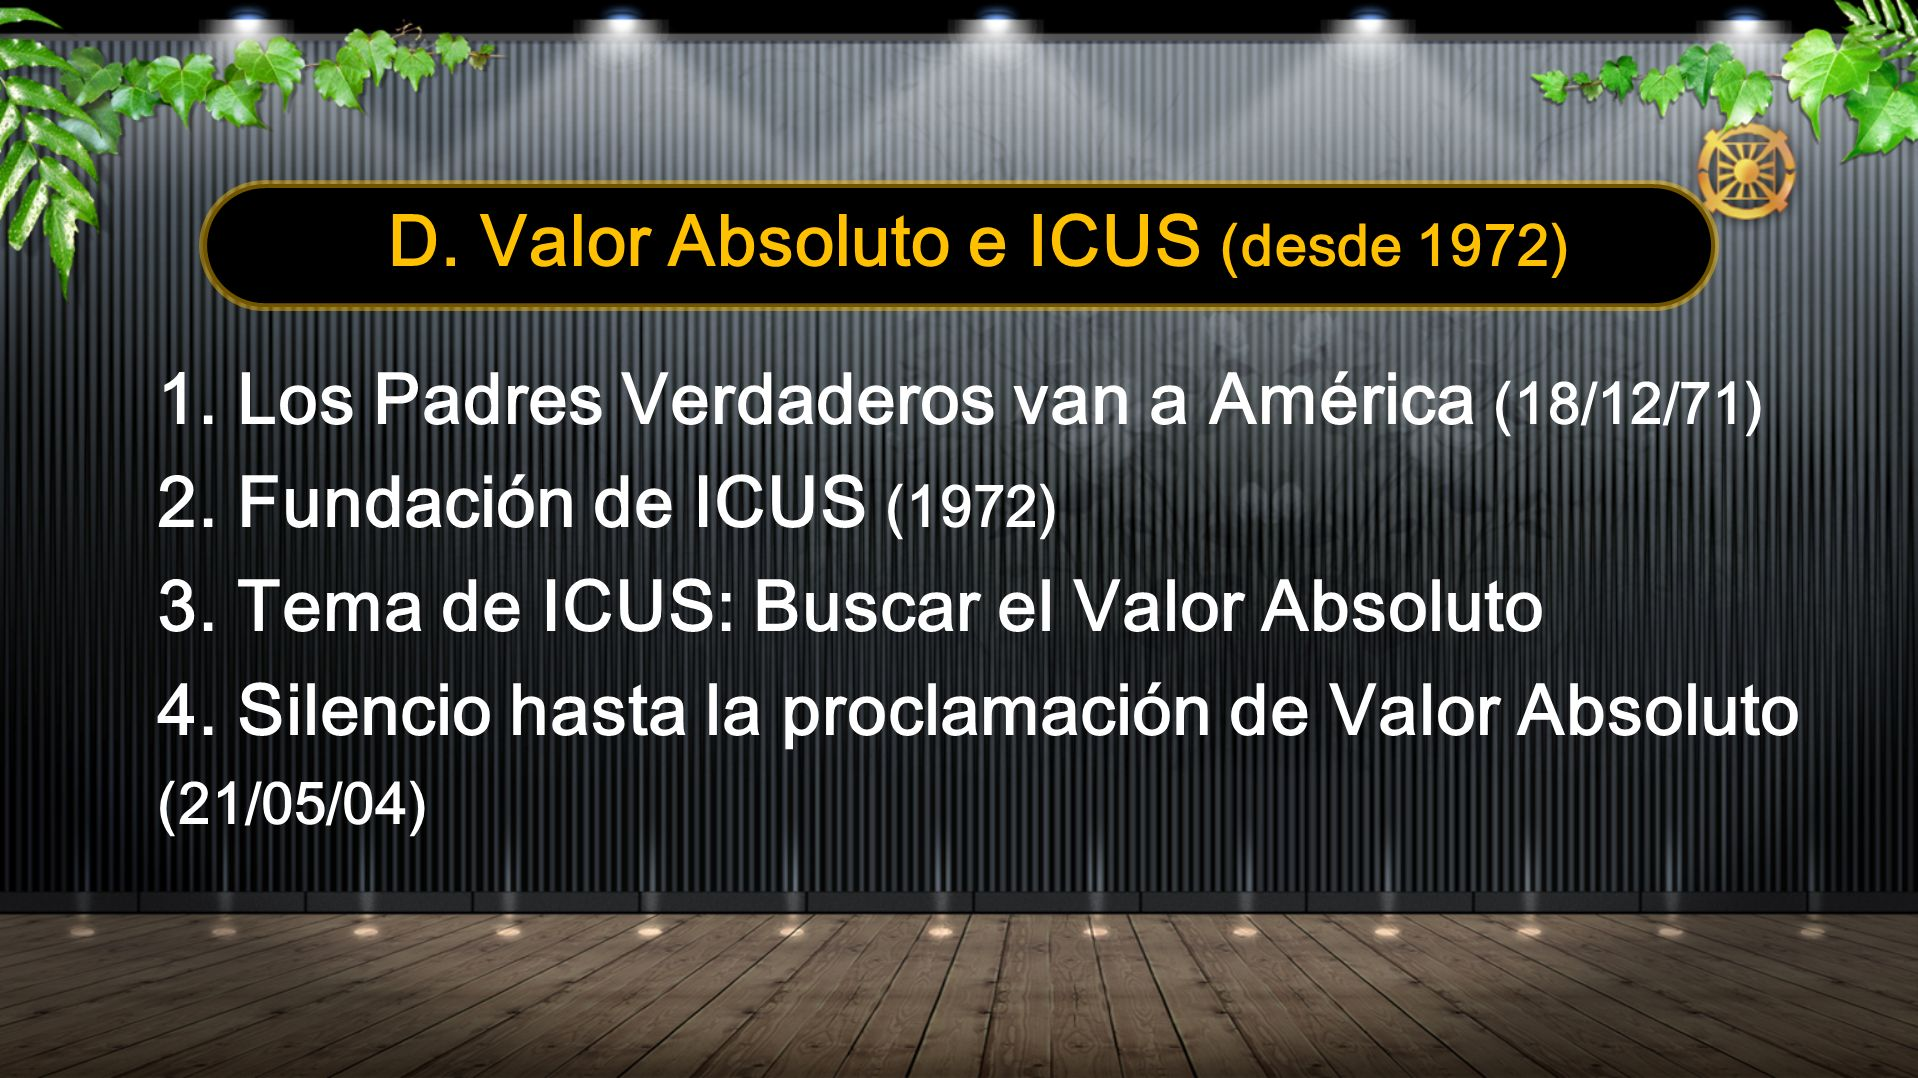 D. Valor Absoluto e ICUS (desde 1972)